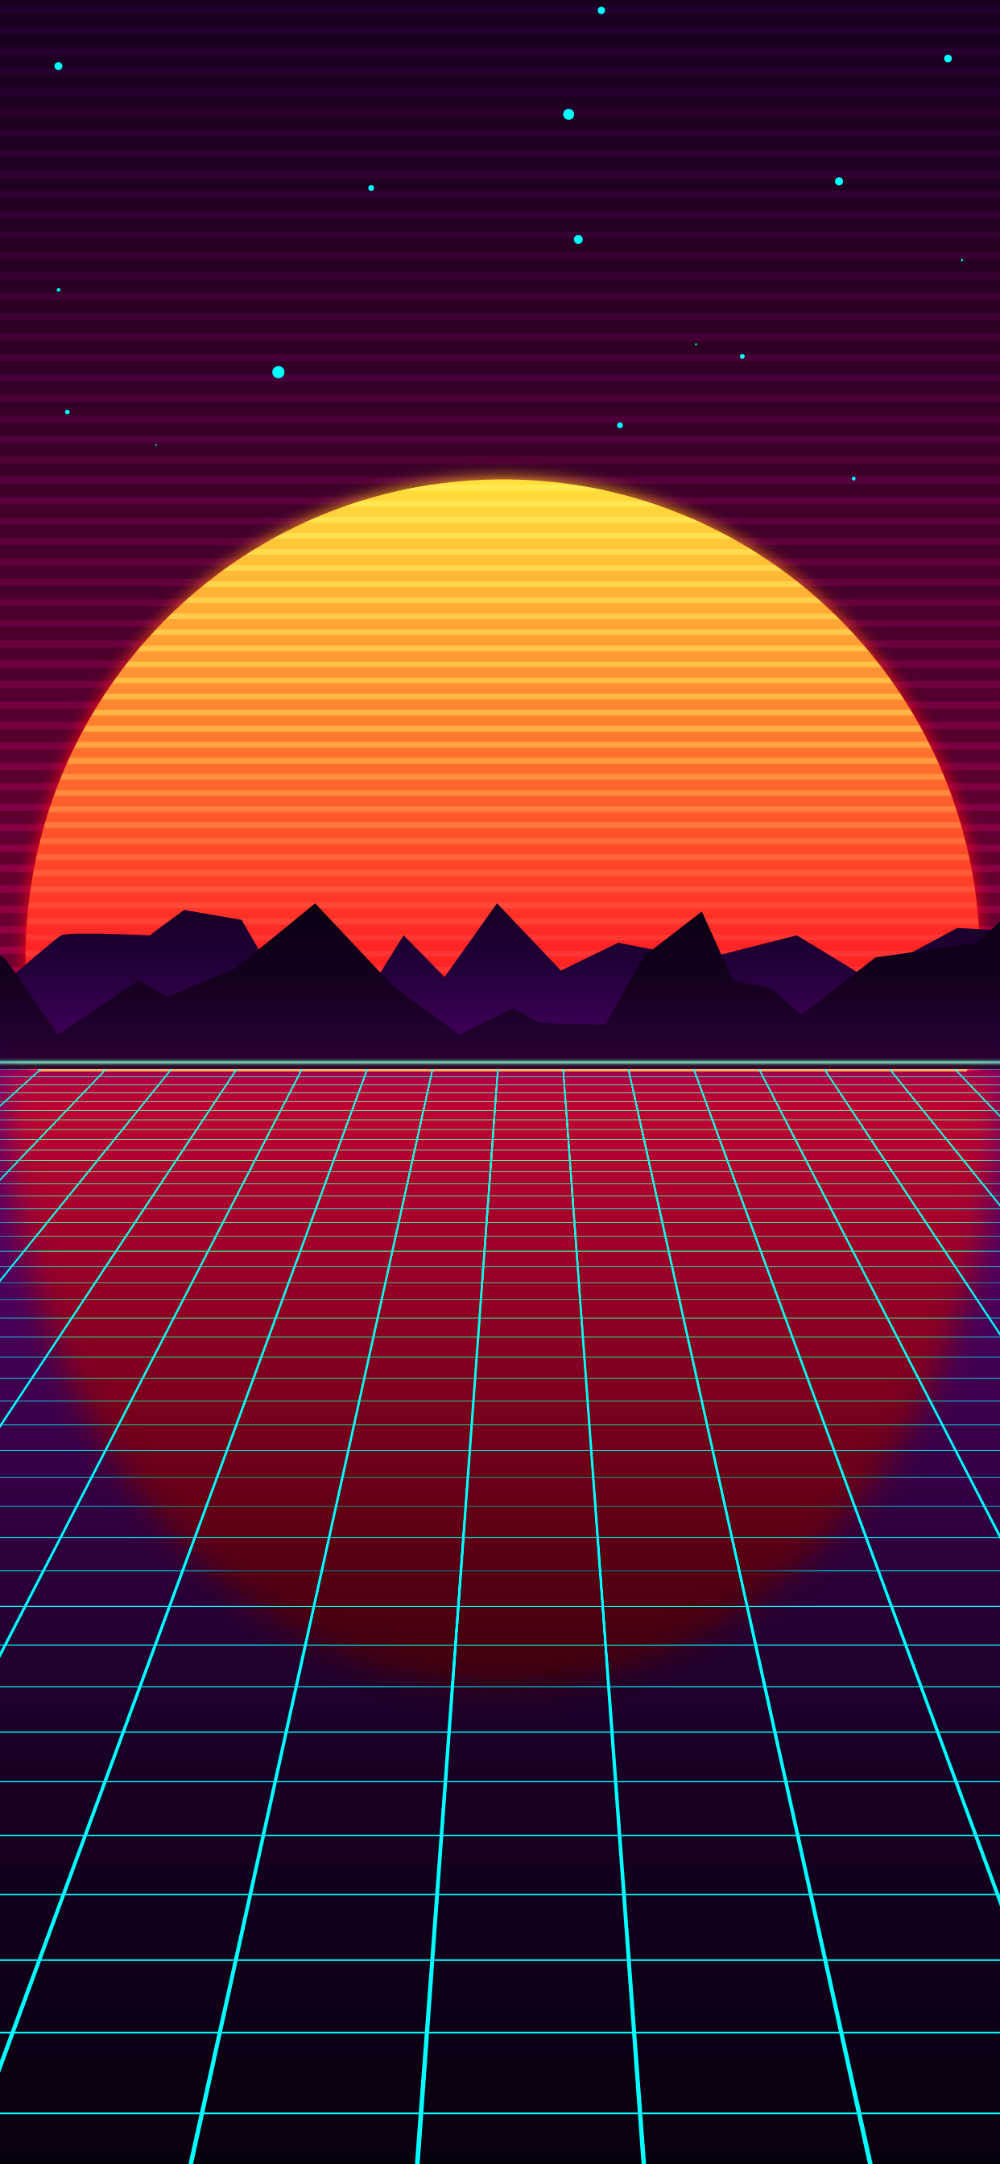 Retro Style Outrun Wallpaper For Phone In Hd Heroscreen Wallpapers Wallpaper Phone Wallpaper Vaporwave Wallpaper